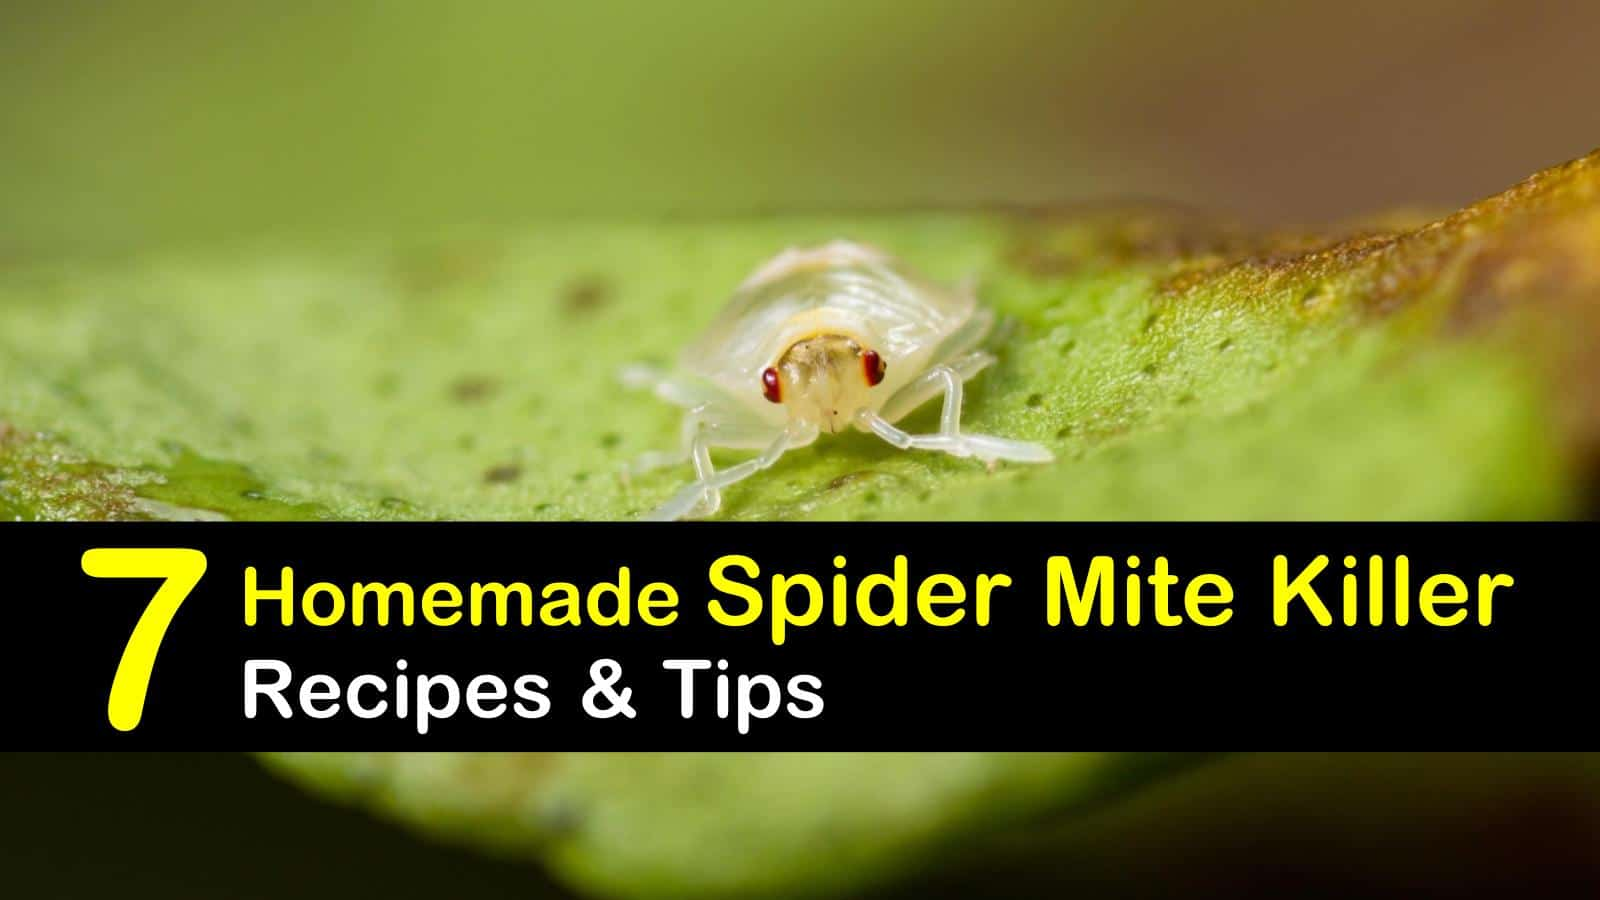 7 Natural Ways to Kill Spider Mites